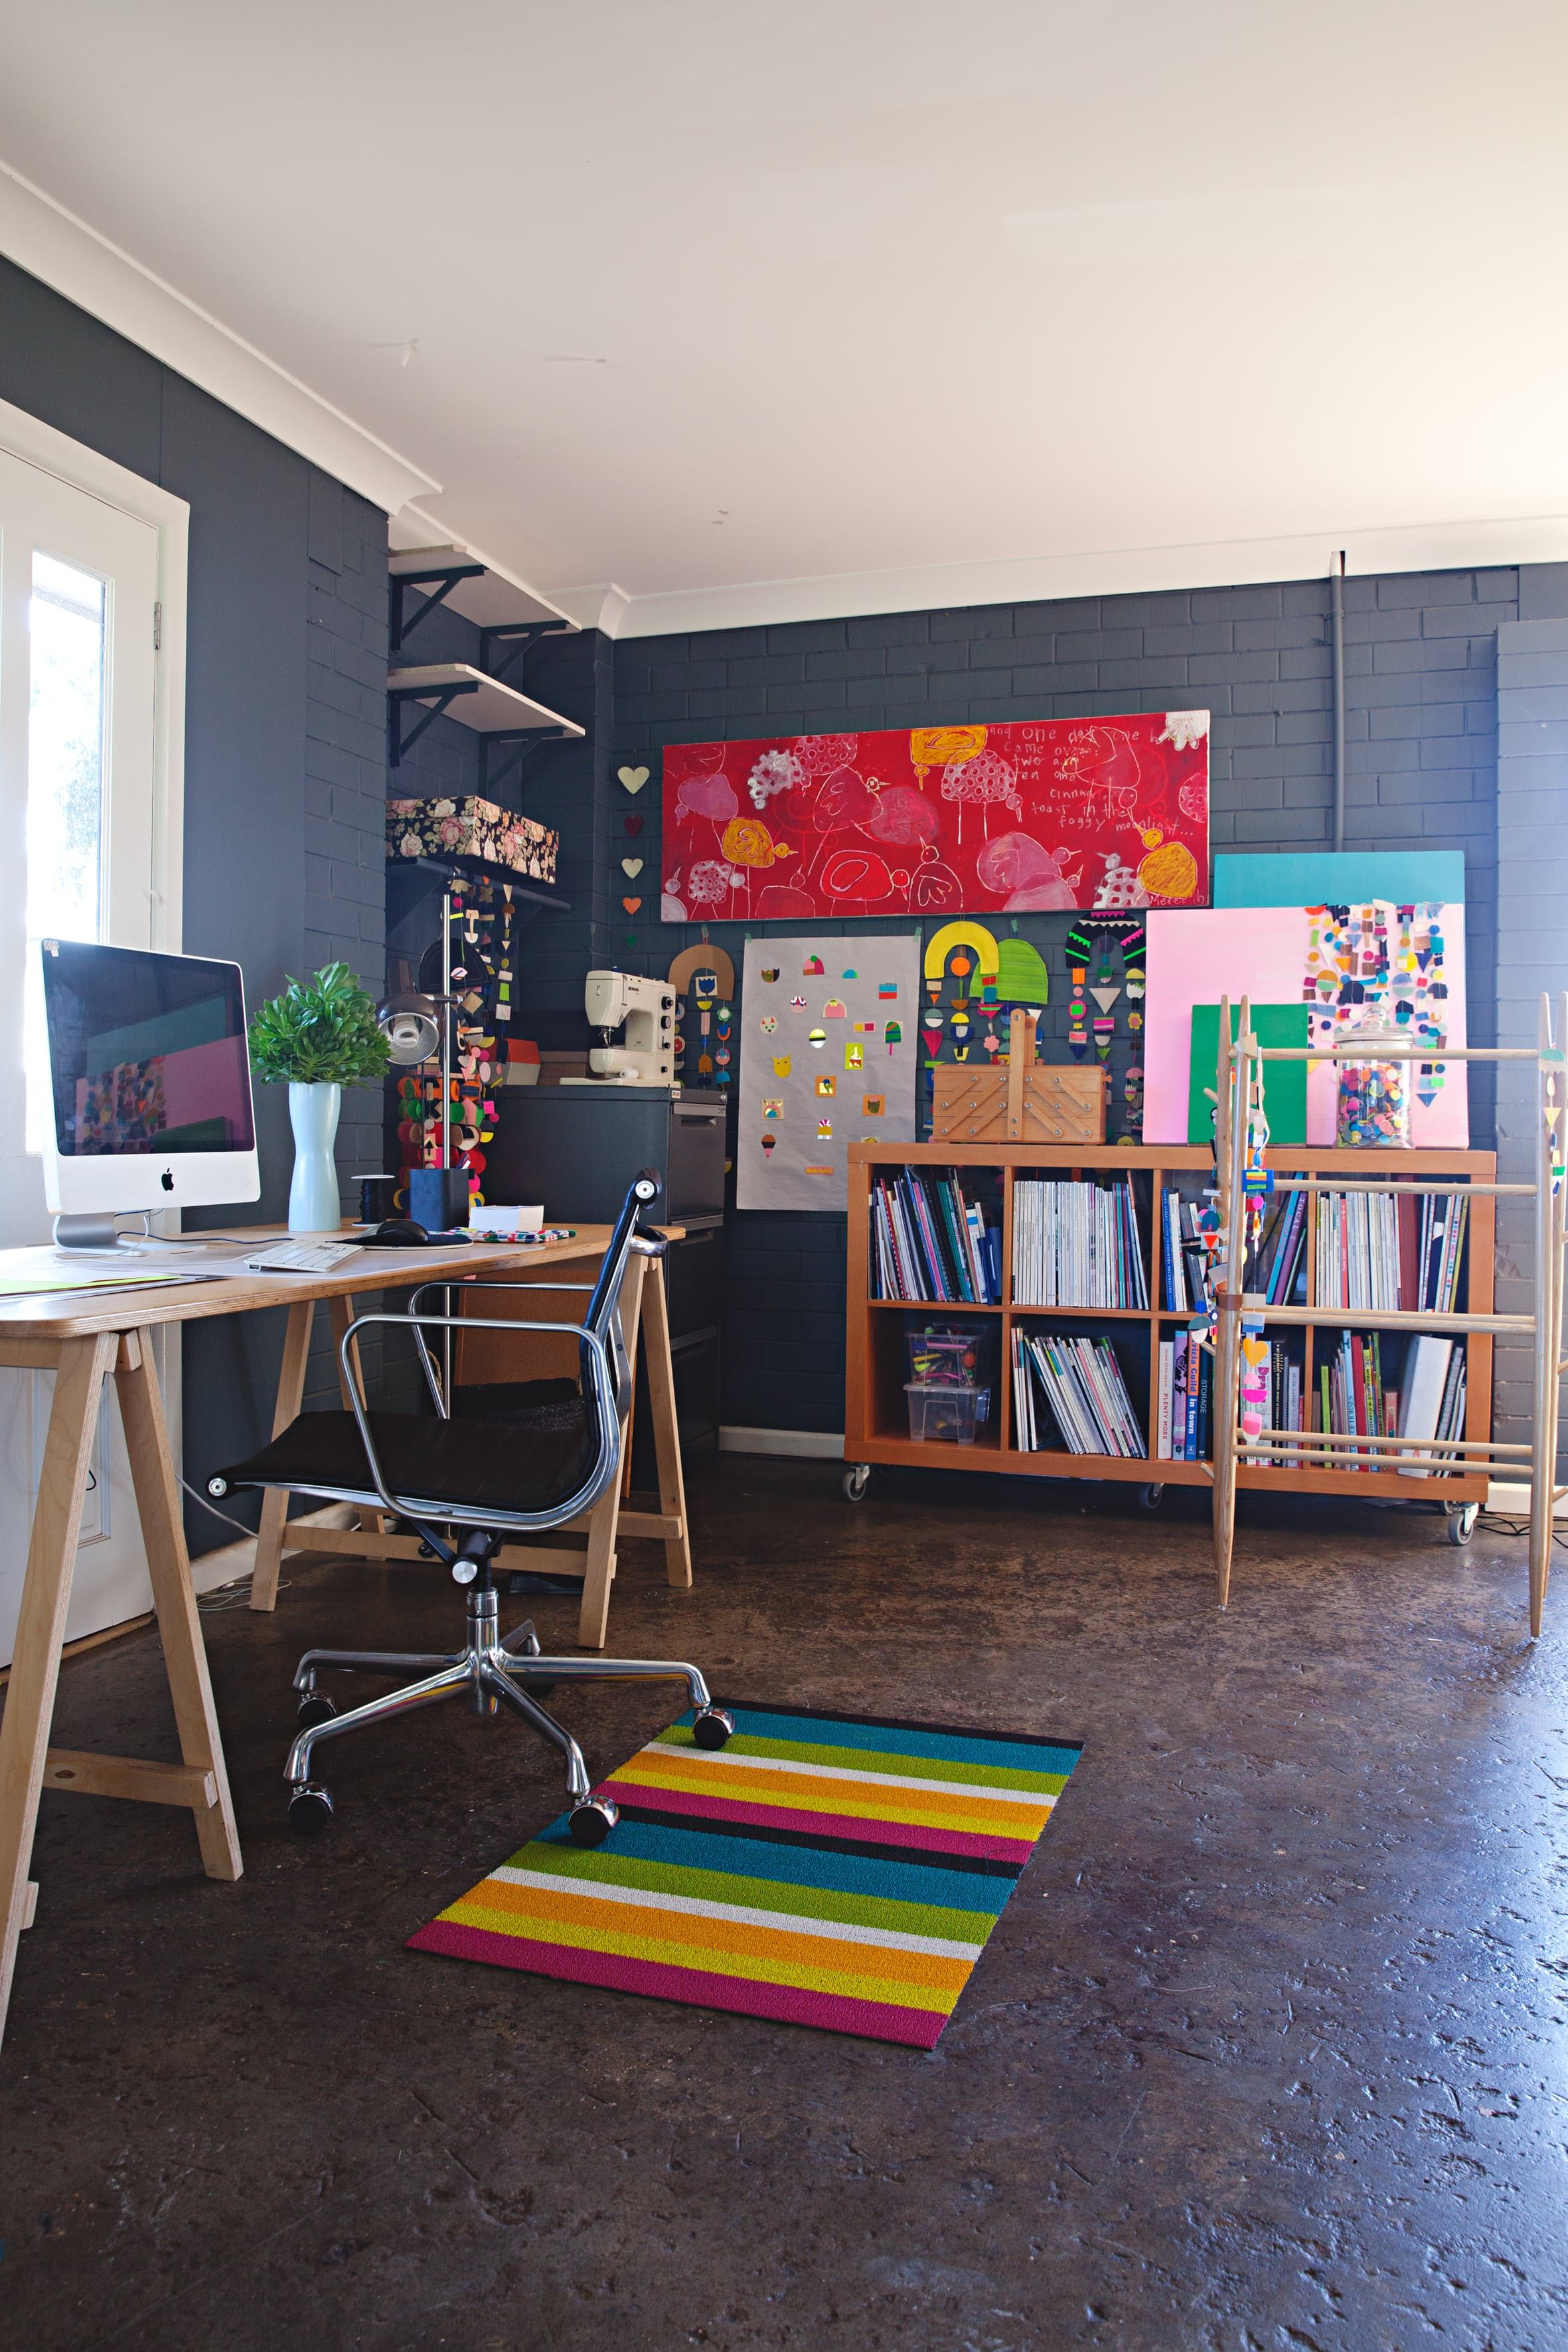 A Designer's Colorful, Crafty Australian Home (With